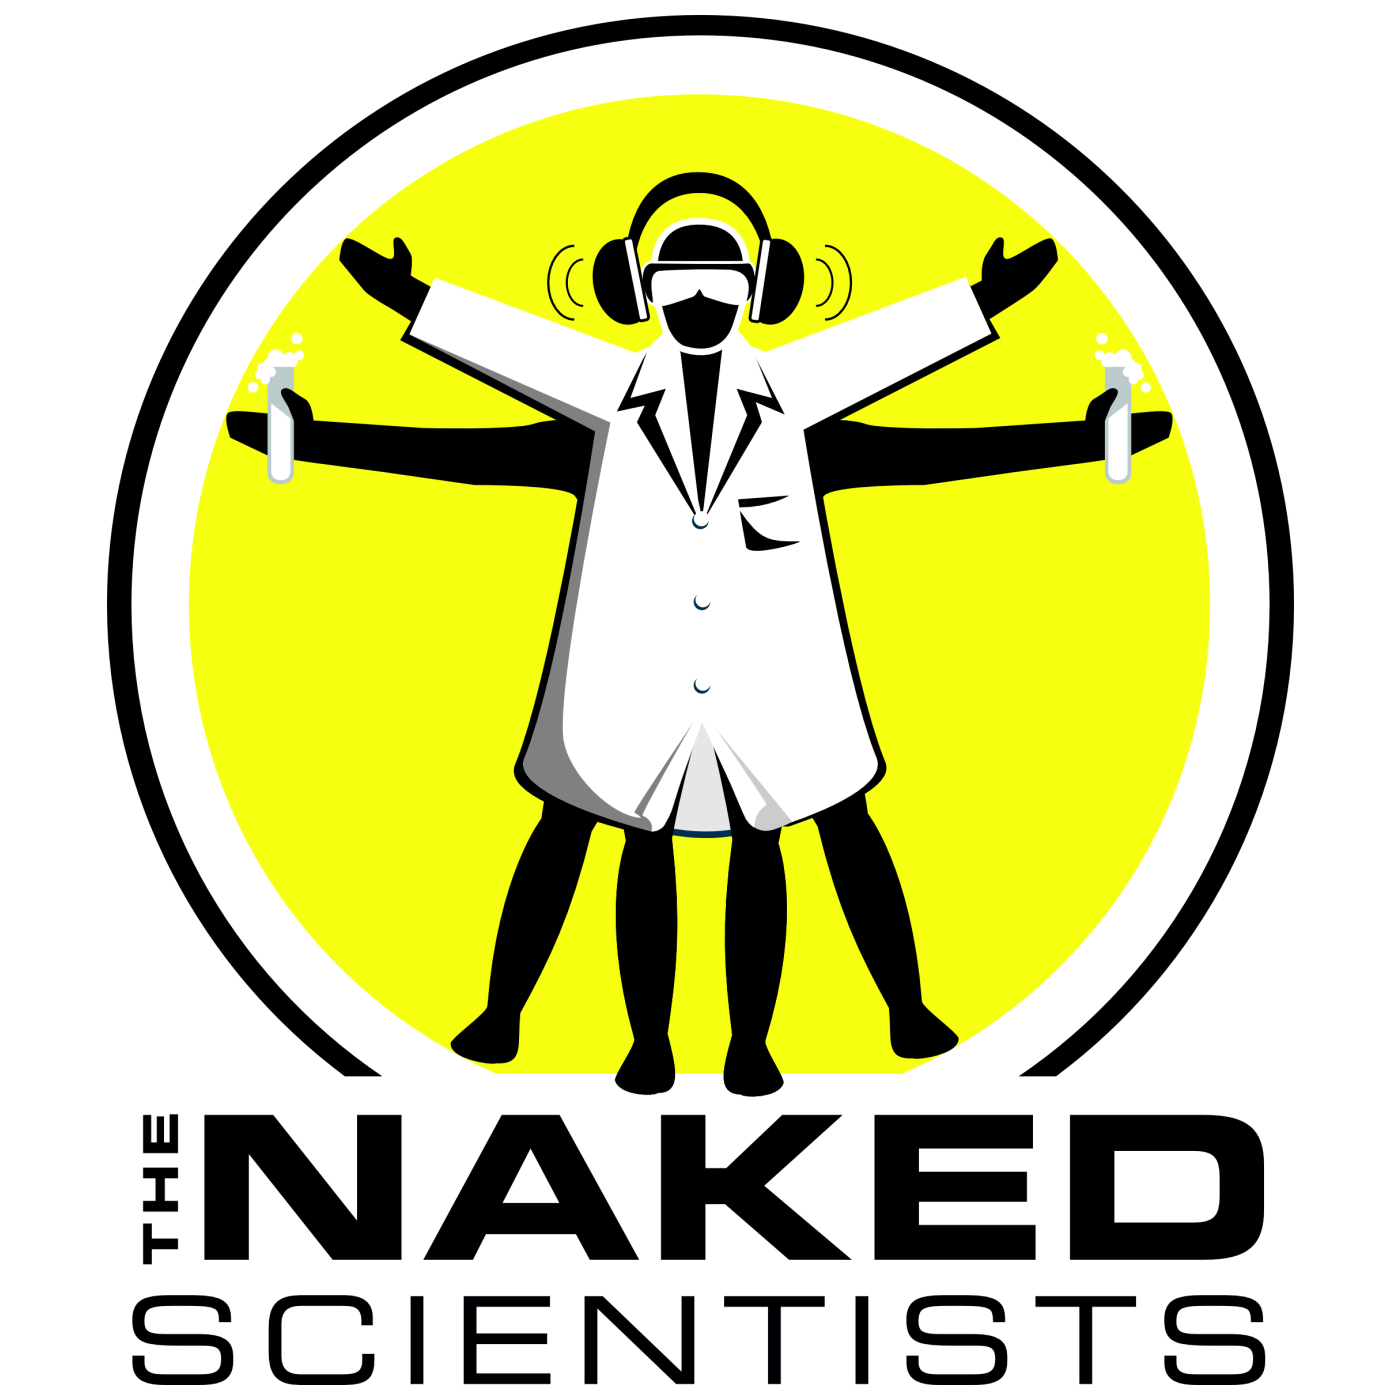 - The Naked Scientists ENHANCED PODCAST - Stripping Down Science